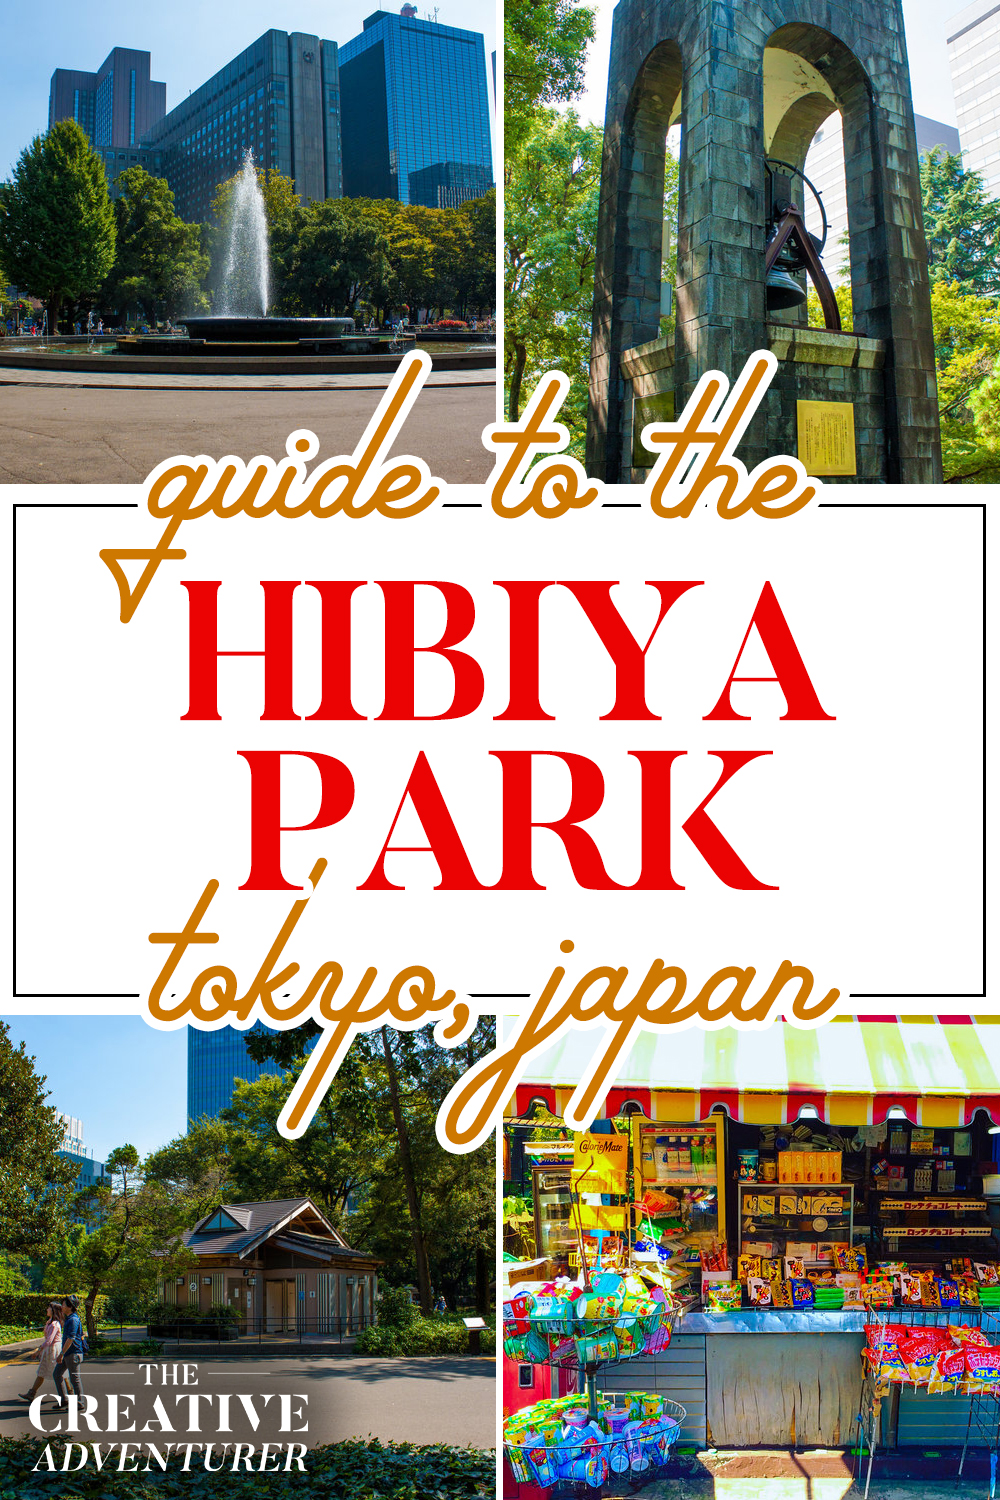 The-Creative-Adventurer-guide-to-hibiya-park.jpg